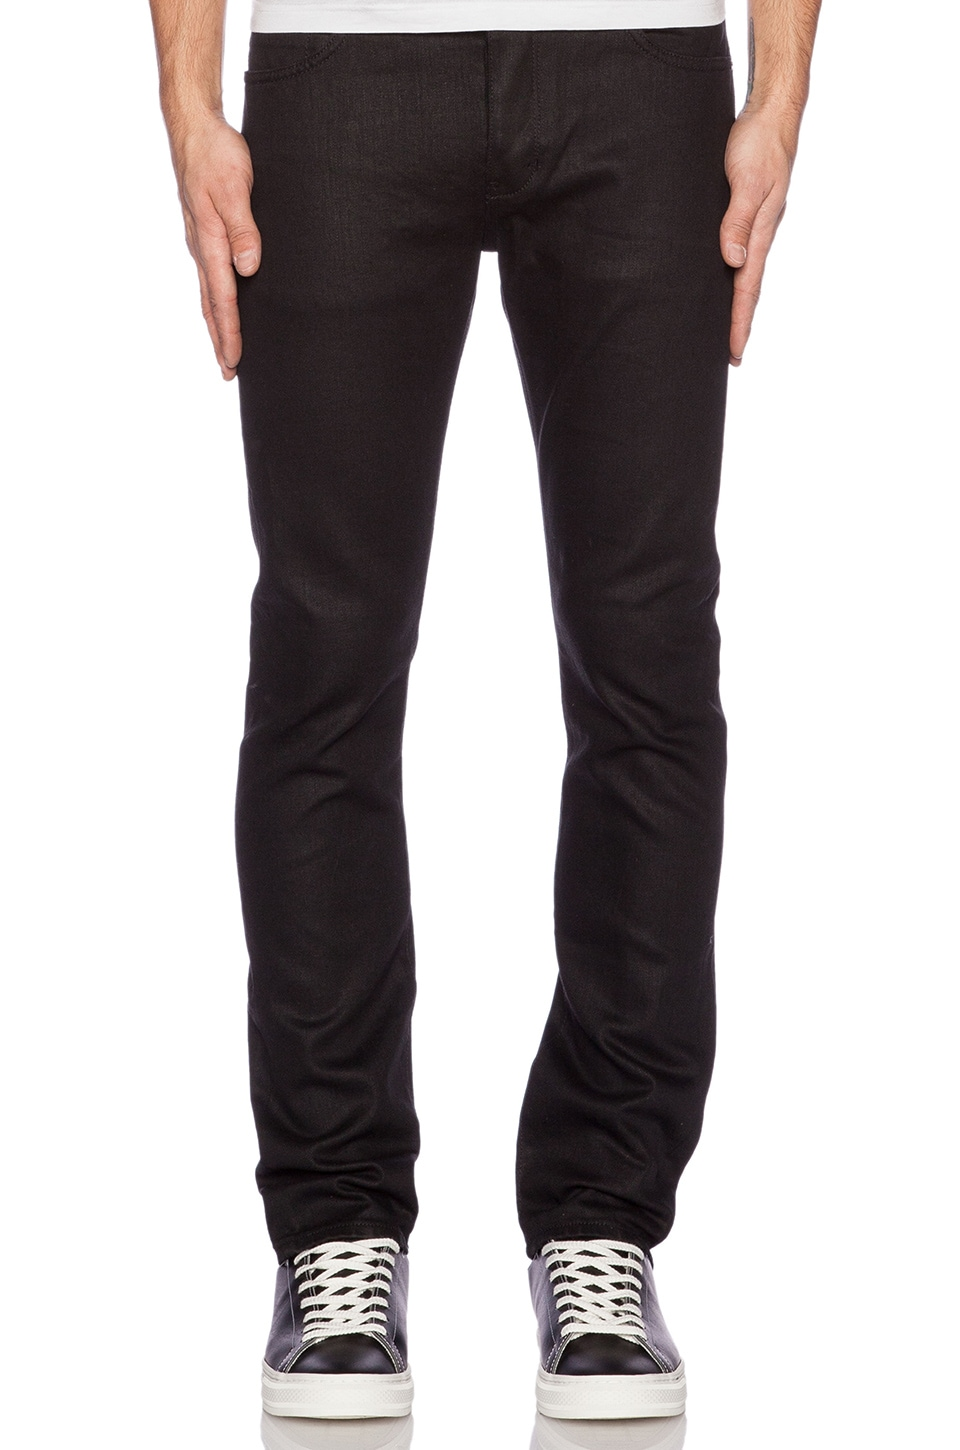 Sharp Iggy Skinny Jeans by NEUW